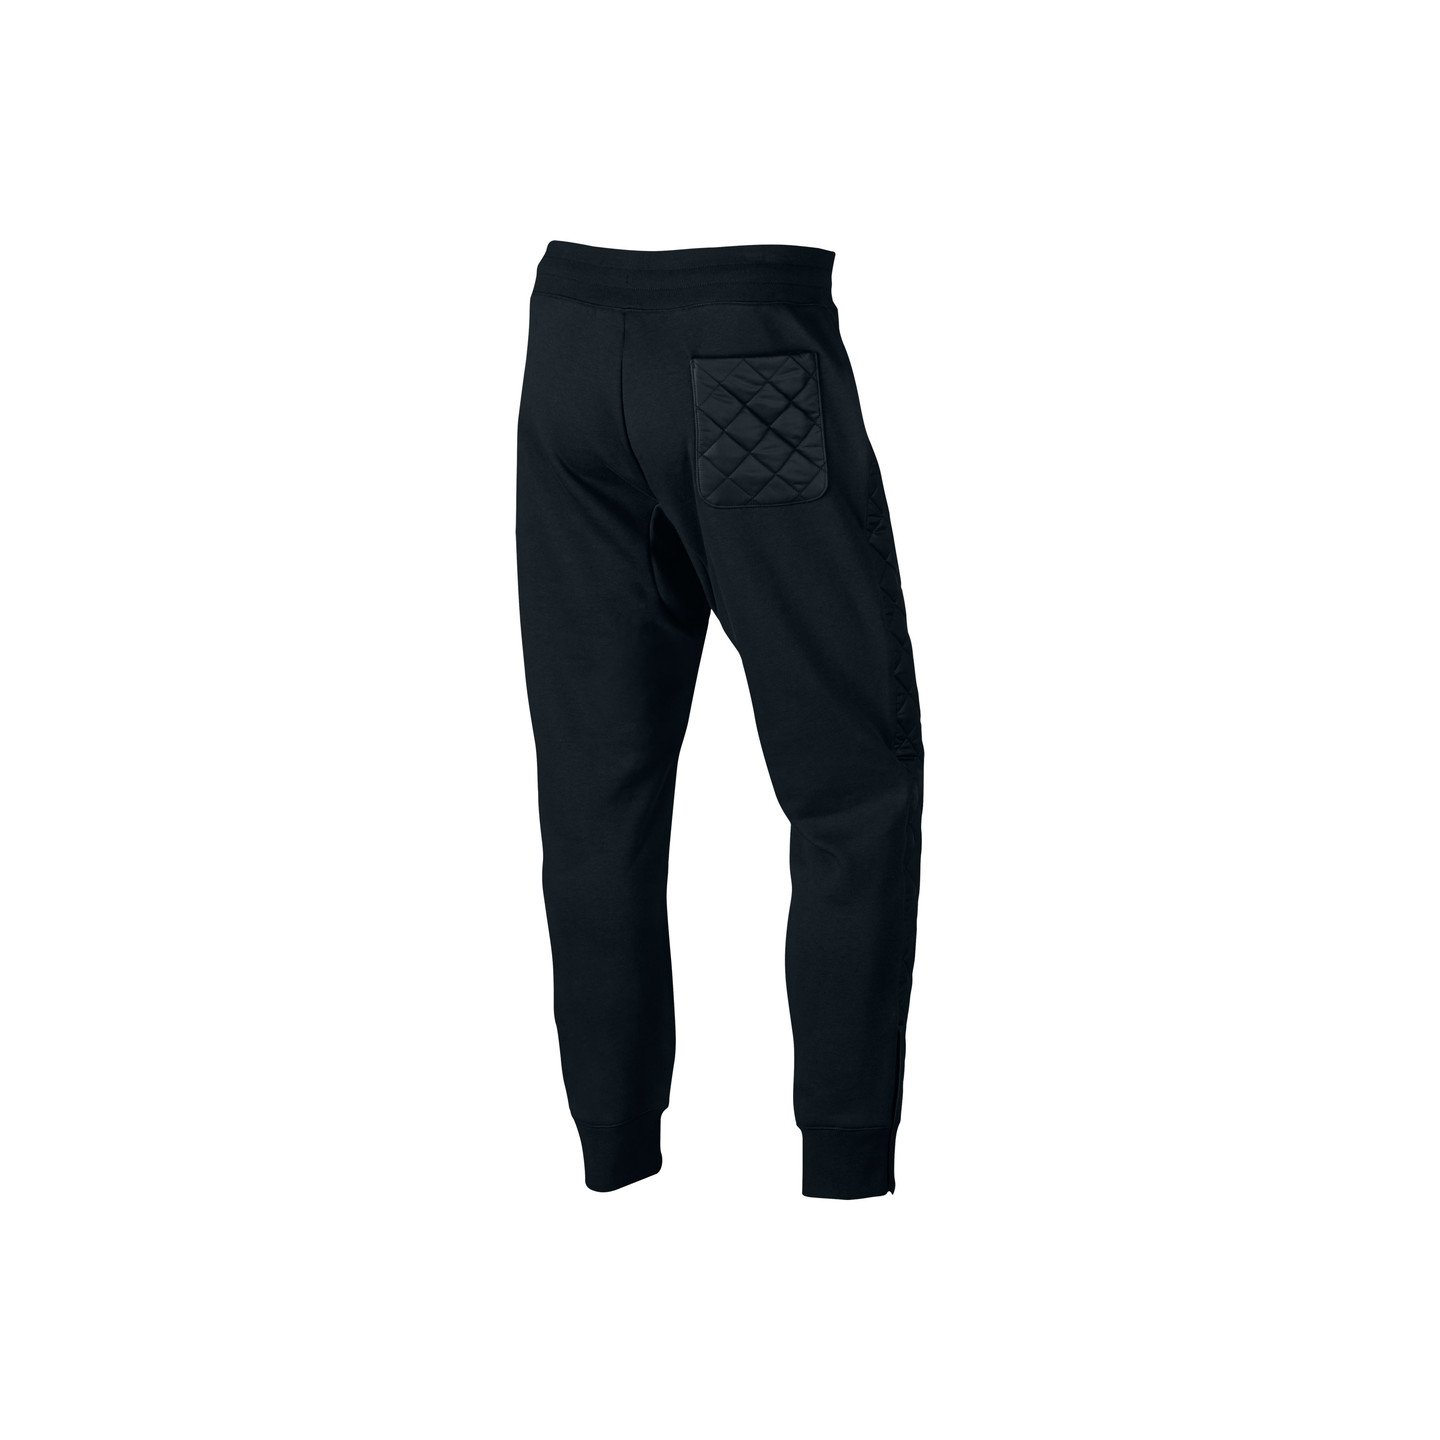 Nike Fleece Cuffed Winterized Pants V442 Black 678942-010-m